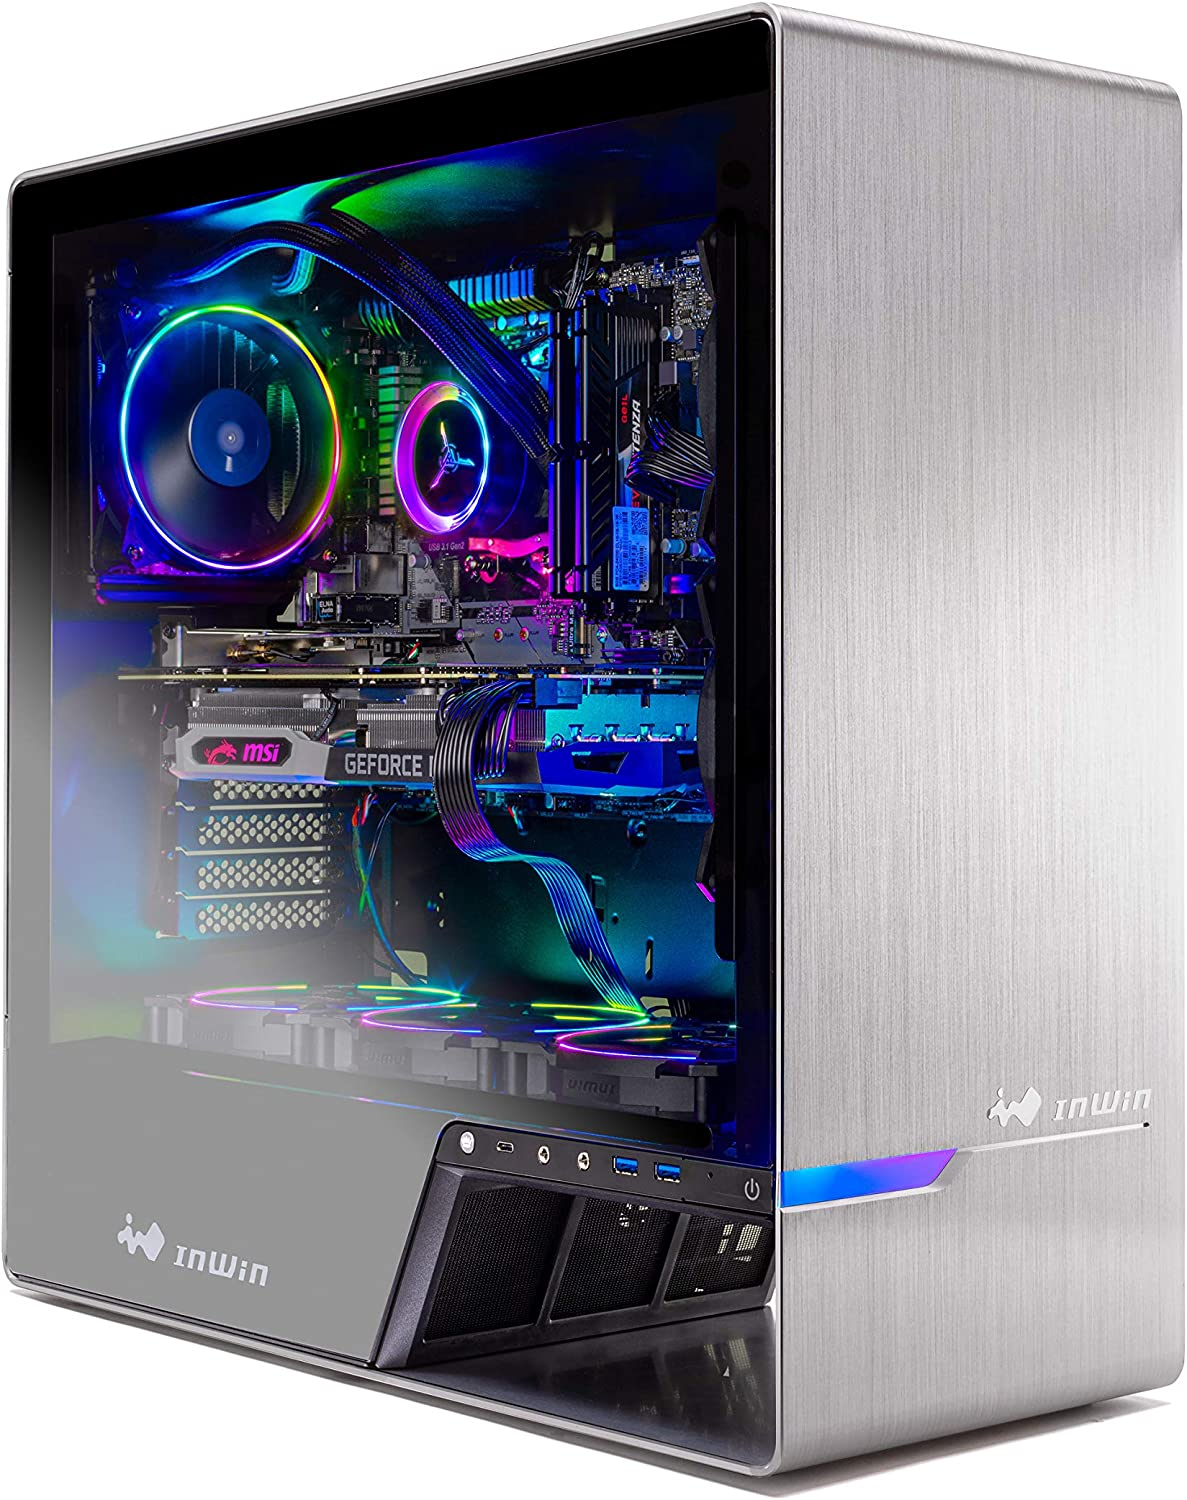 Skytech Legacy Gaming Computer PC Desktop Ryzen 7 3700X 3.6GHz, RTX 2070 Super 8G, 500GB SSD, 16GB DDR4 3000MHz, RGB Fans, Windows 10 Home 64-bit, 120mm AIO Cooler, 802.11AC Wi-Fi